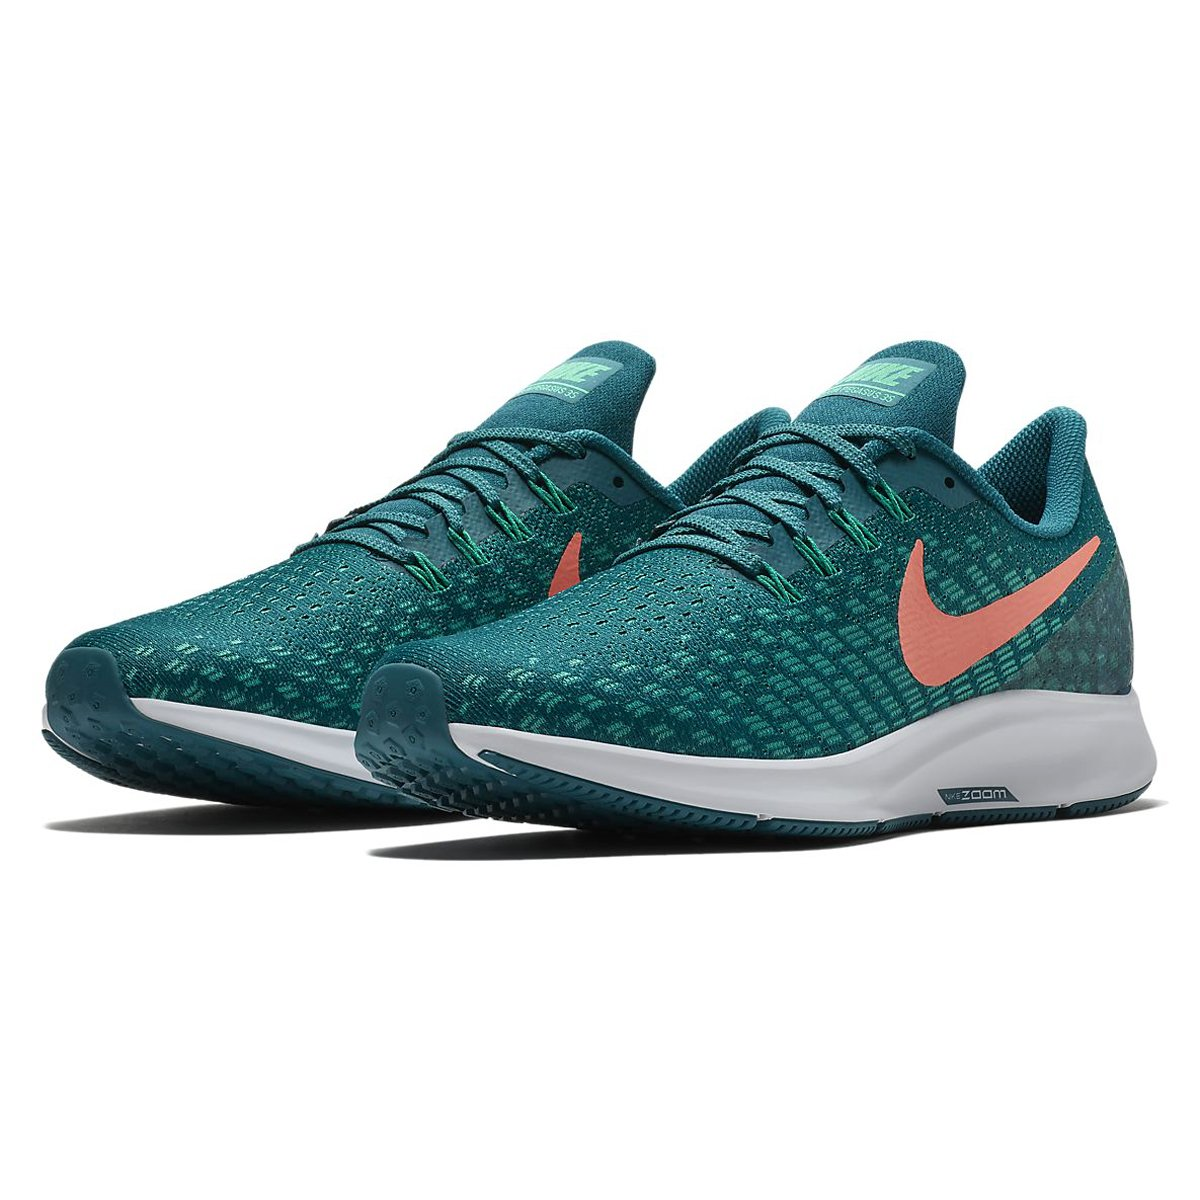 factory authentic 03a8d 84833 Galleon - NIKE Men s Air Zoom Pegasus 35 Running Shoes (12, Teal Orange)